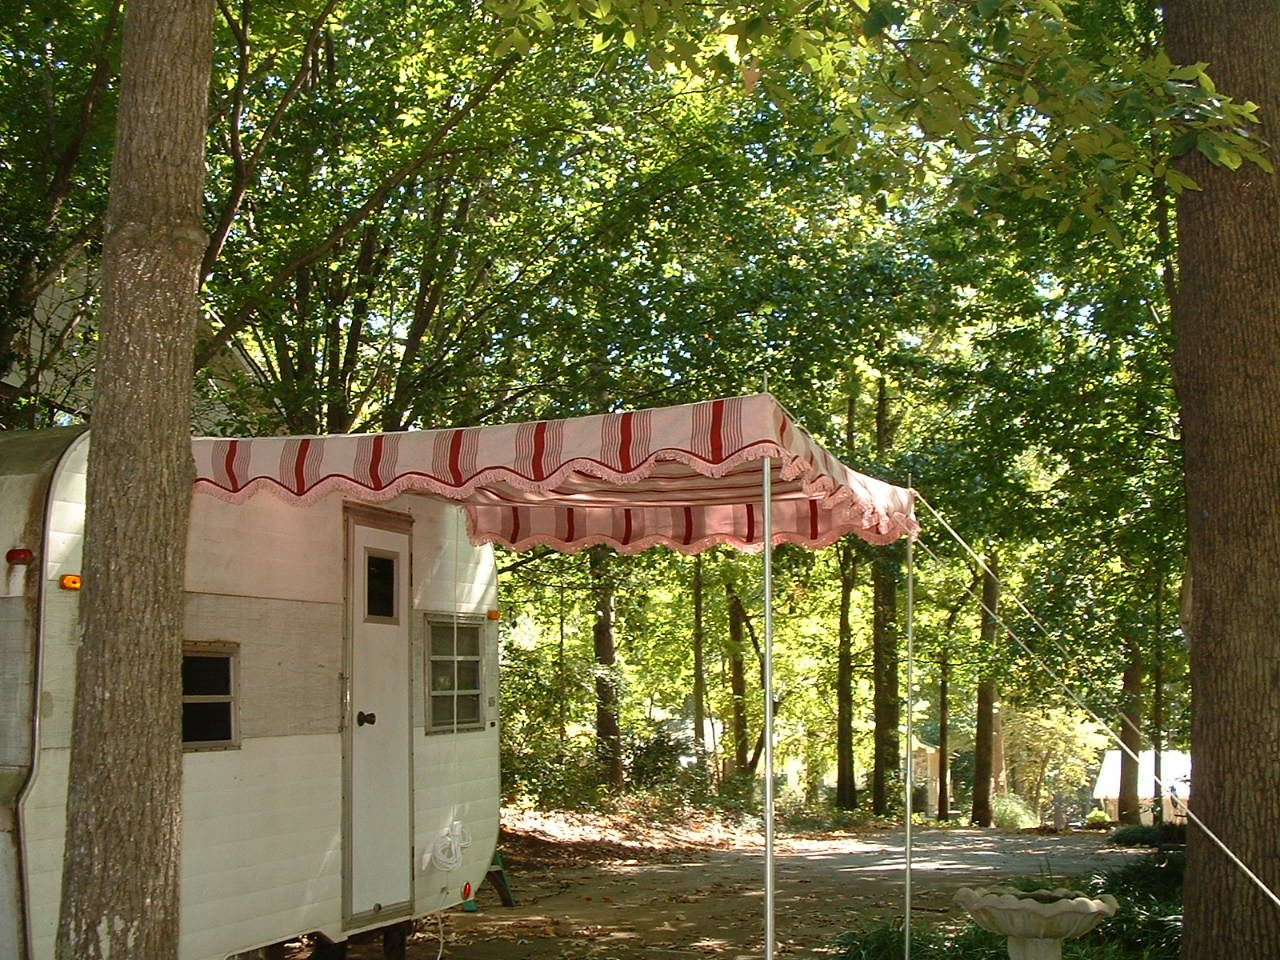 2020 Sunbrella Awning Fabric Just Arrived Trailer Awning Vintage Trailer Awning